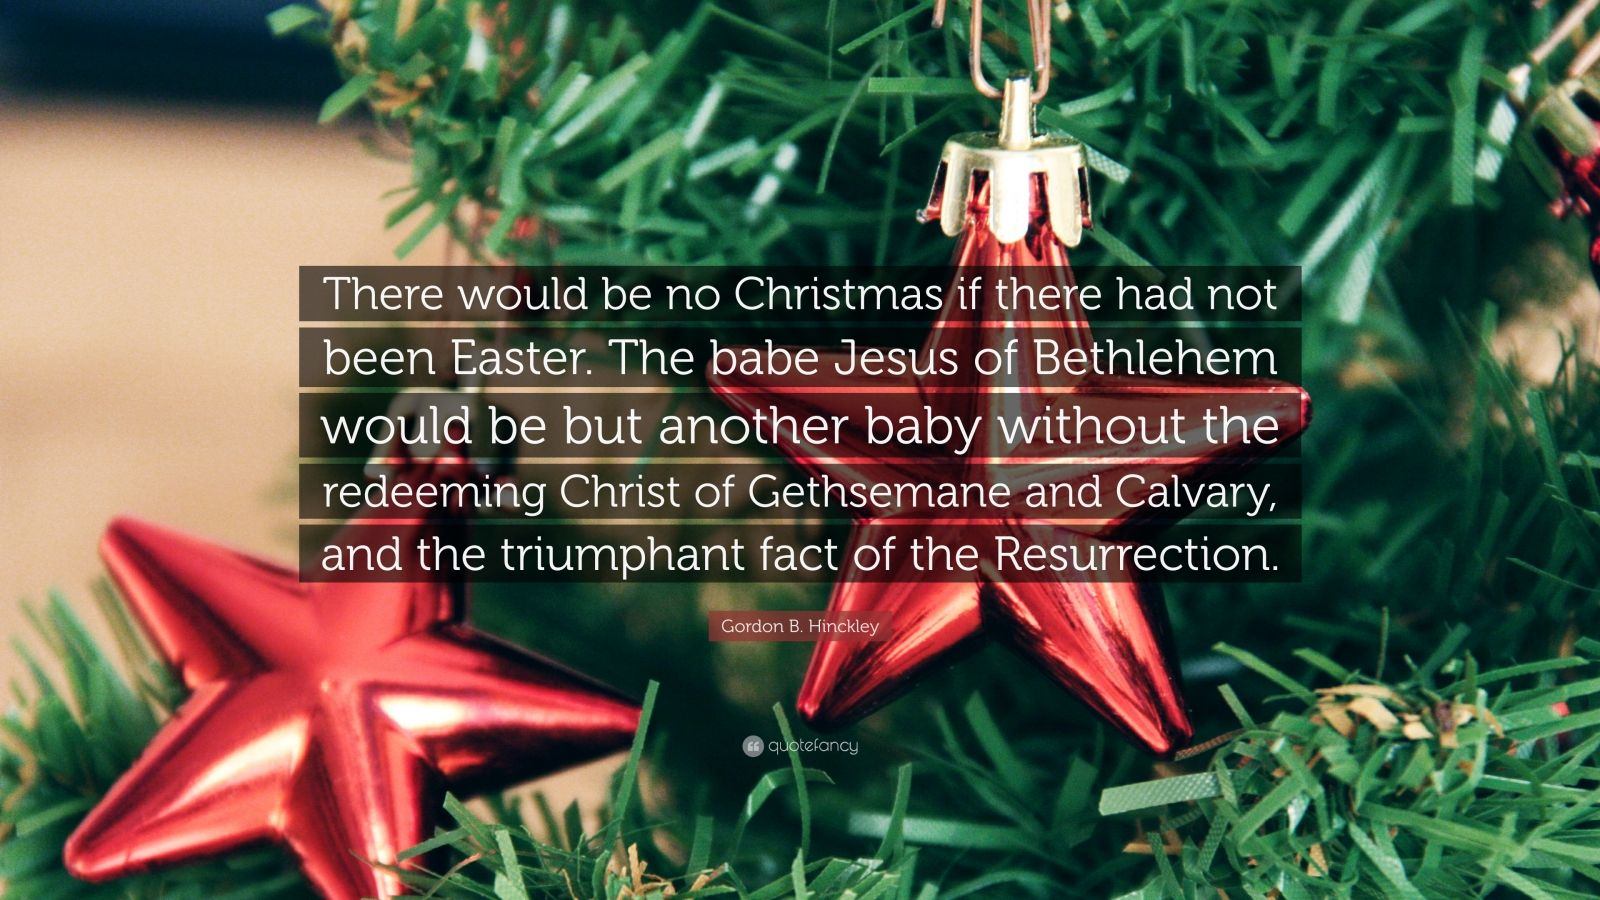 """Gordon B. Hinckley Quote: """"There would be no Christmas if there had not been Easter. The babe Jesus of Bethlehem would be but another baby without the redeeming Christ of Gethsemane and Calvary, and the triumphant fact of the Resurrection."""""""